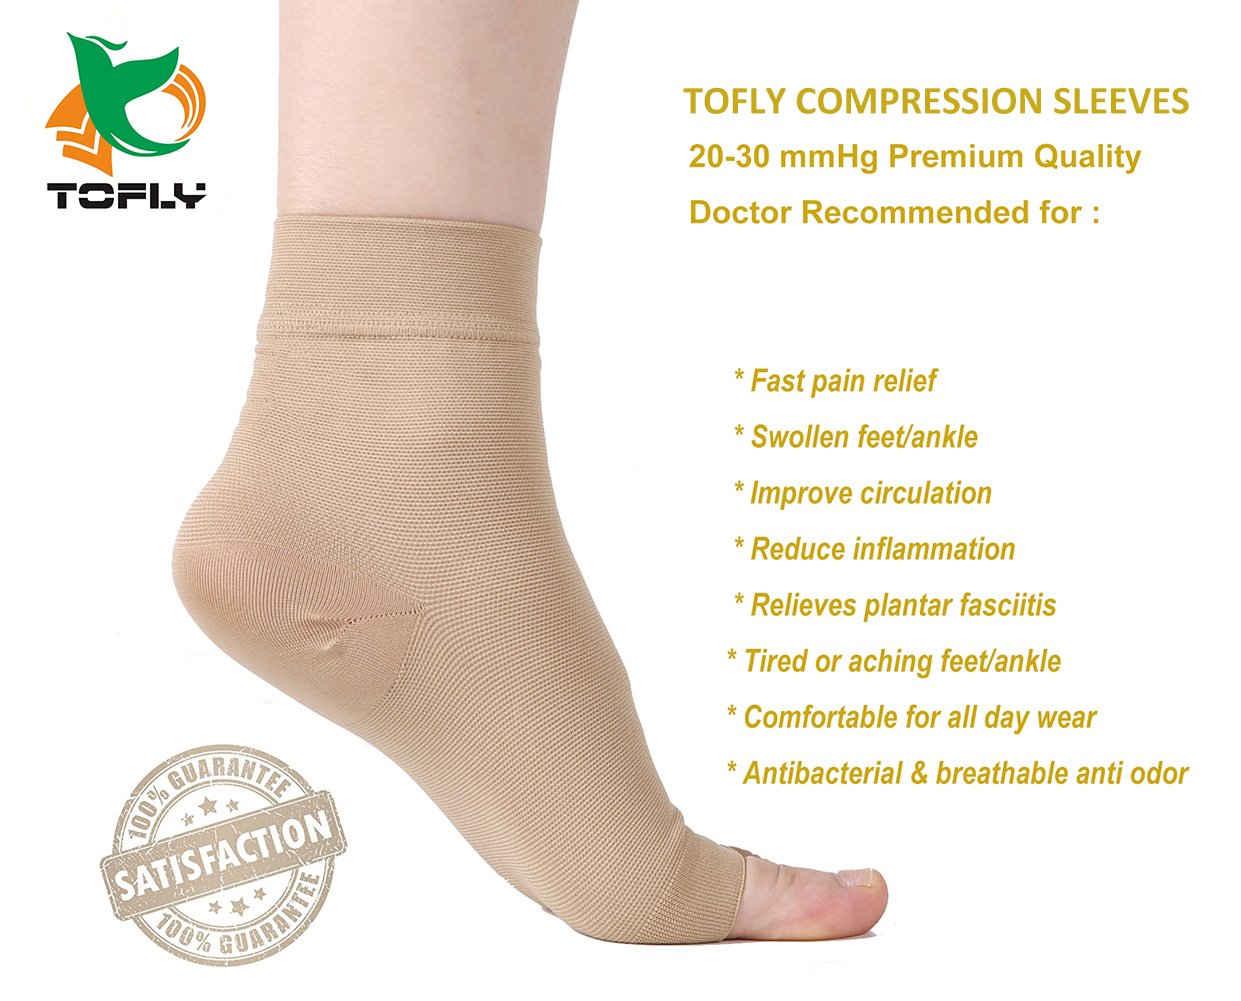 Plantar Fasciitis Socks, (1 pair) Foot Care Compression Sock for Arch Support Women Men, TOFLY Foot Compression Sleeve for Ankle Brace Support, Injury Recovery, Eases Swelling, Relieves Pain Beige L by TOFLY (Image #6)